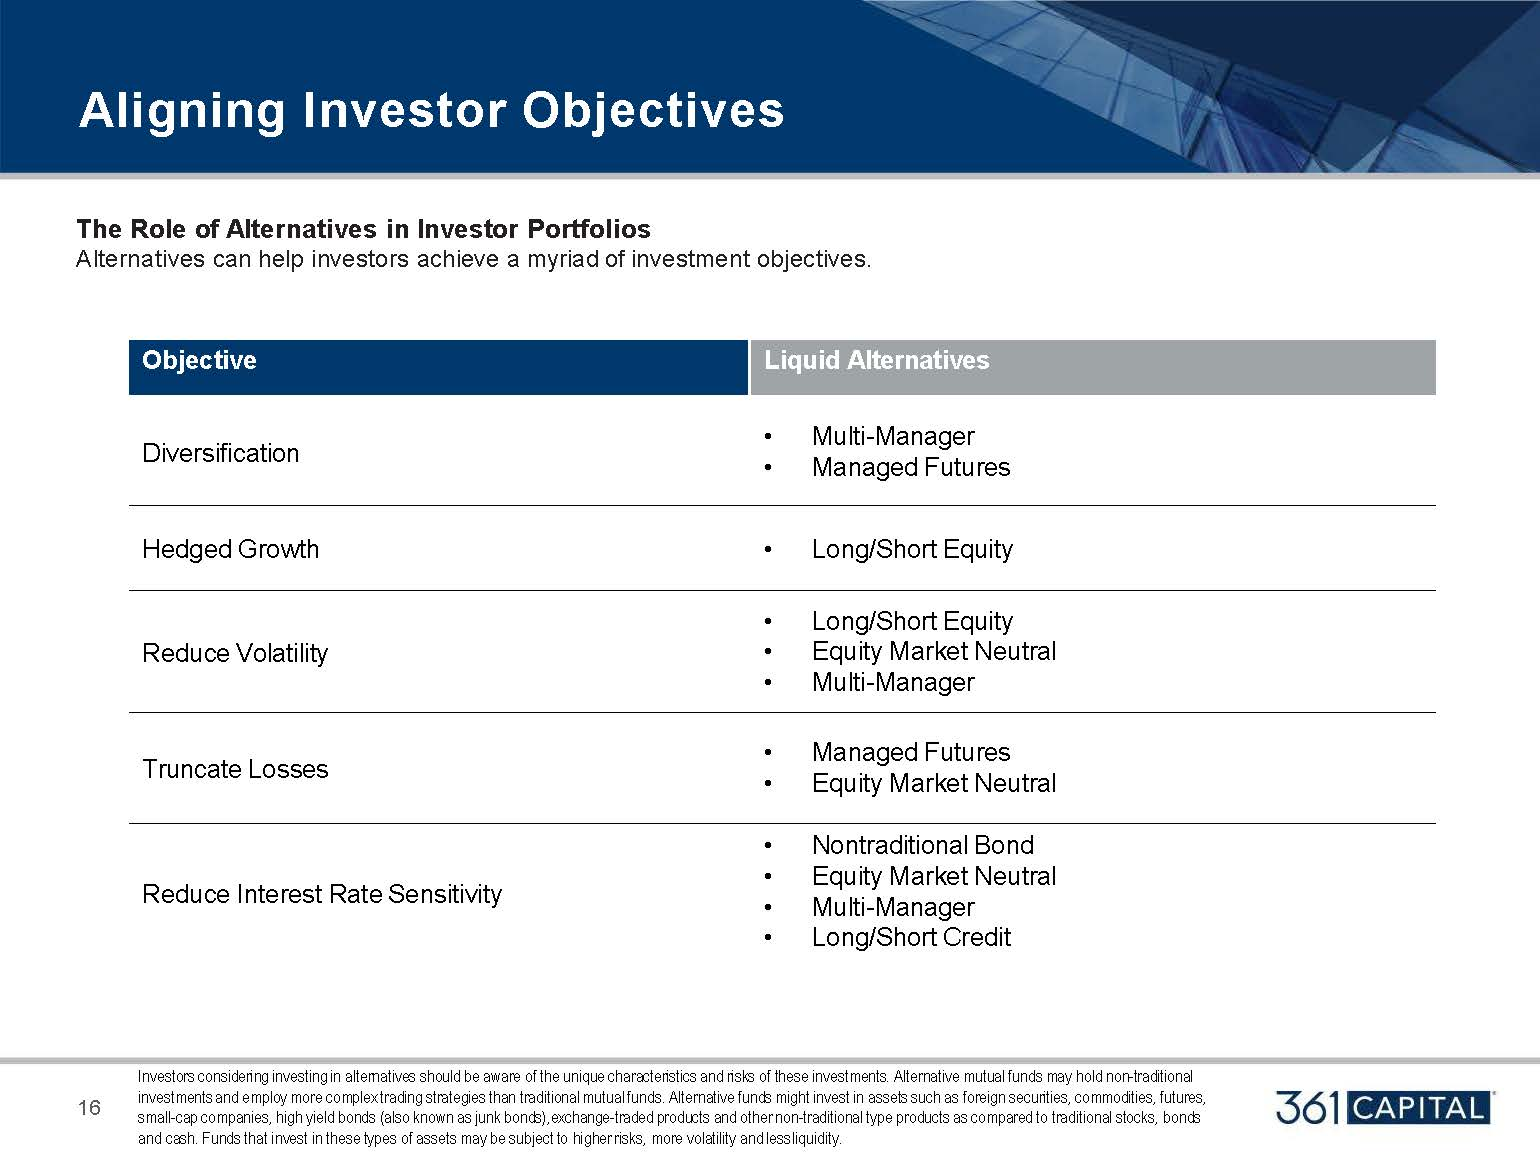 The Role of Alternatives in Investor Portfolios